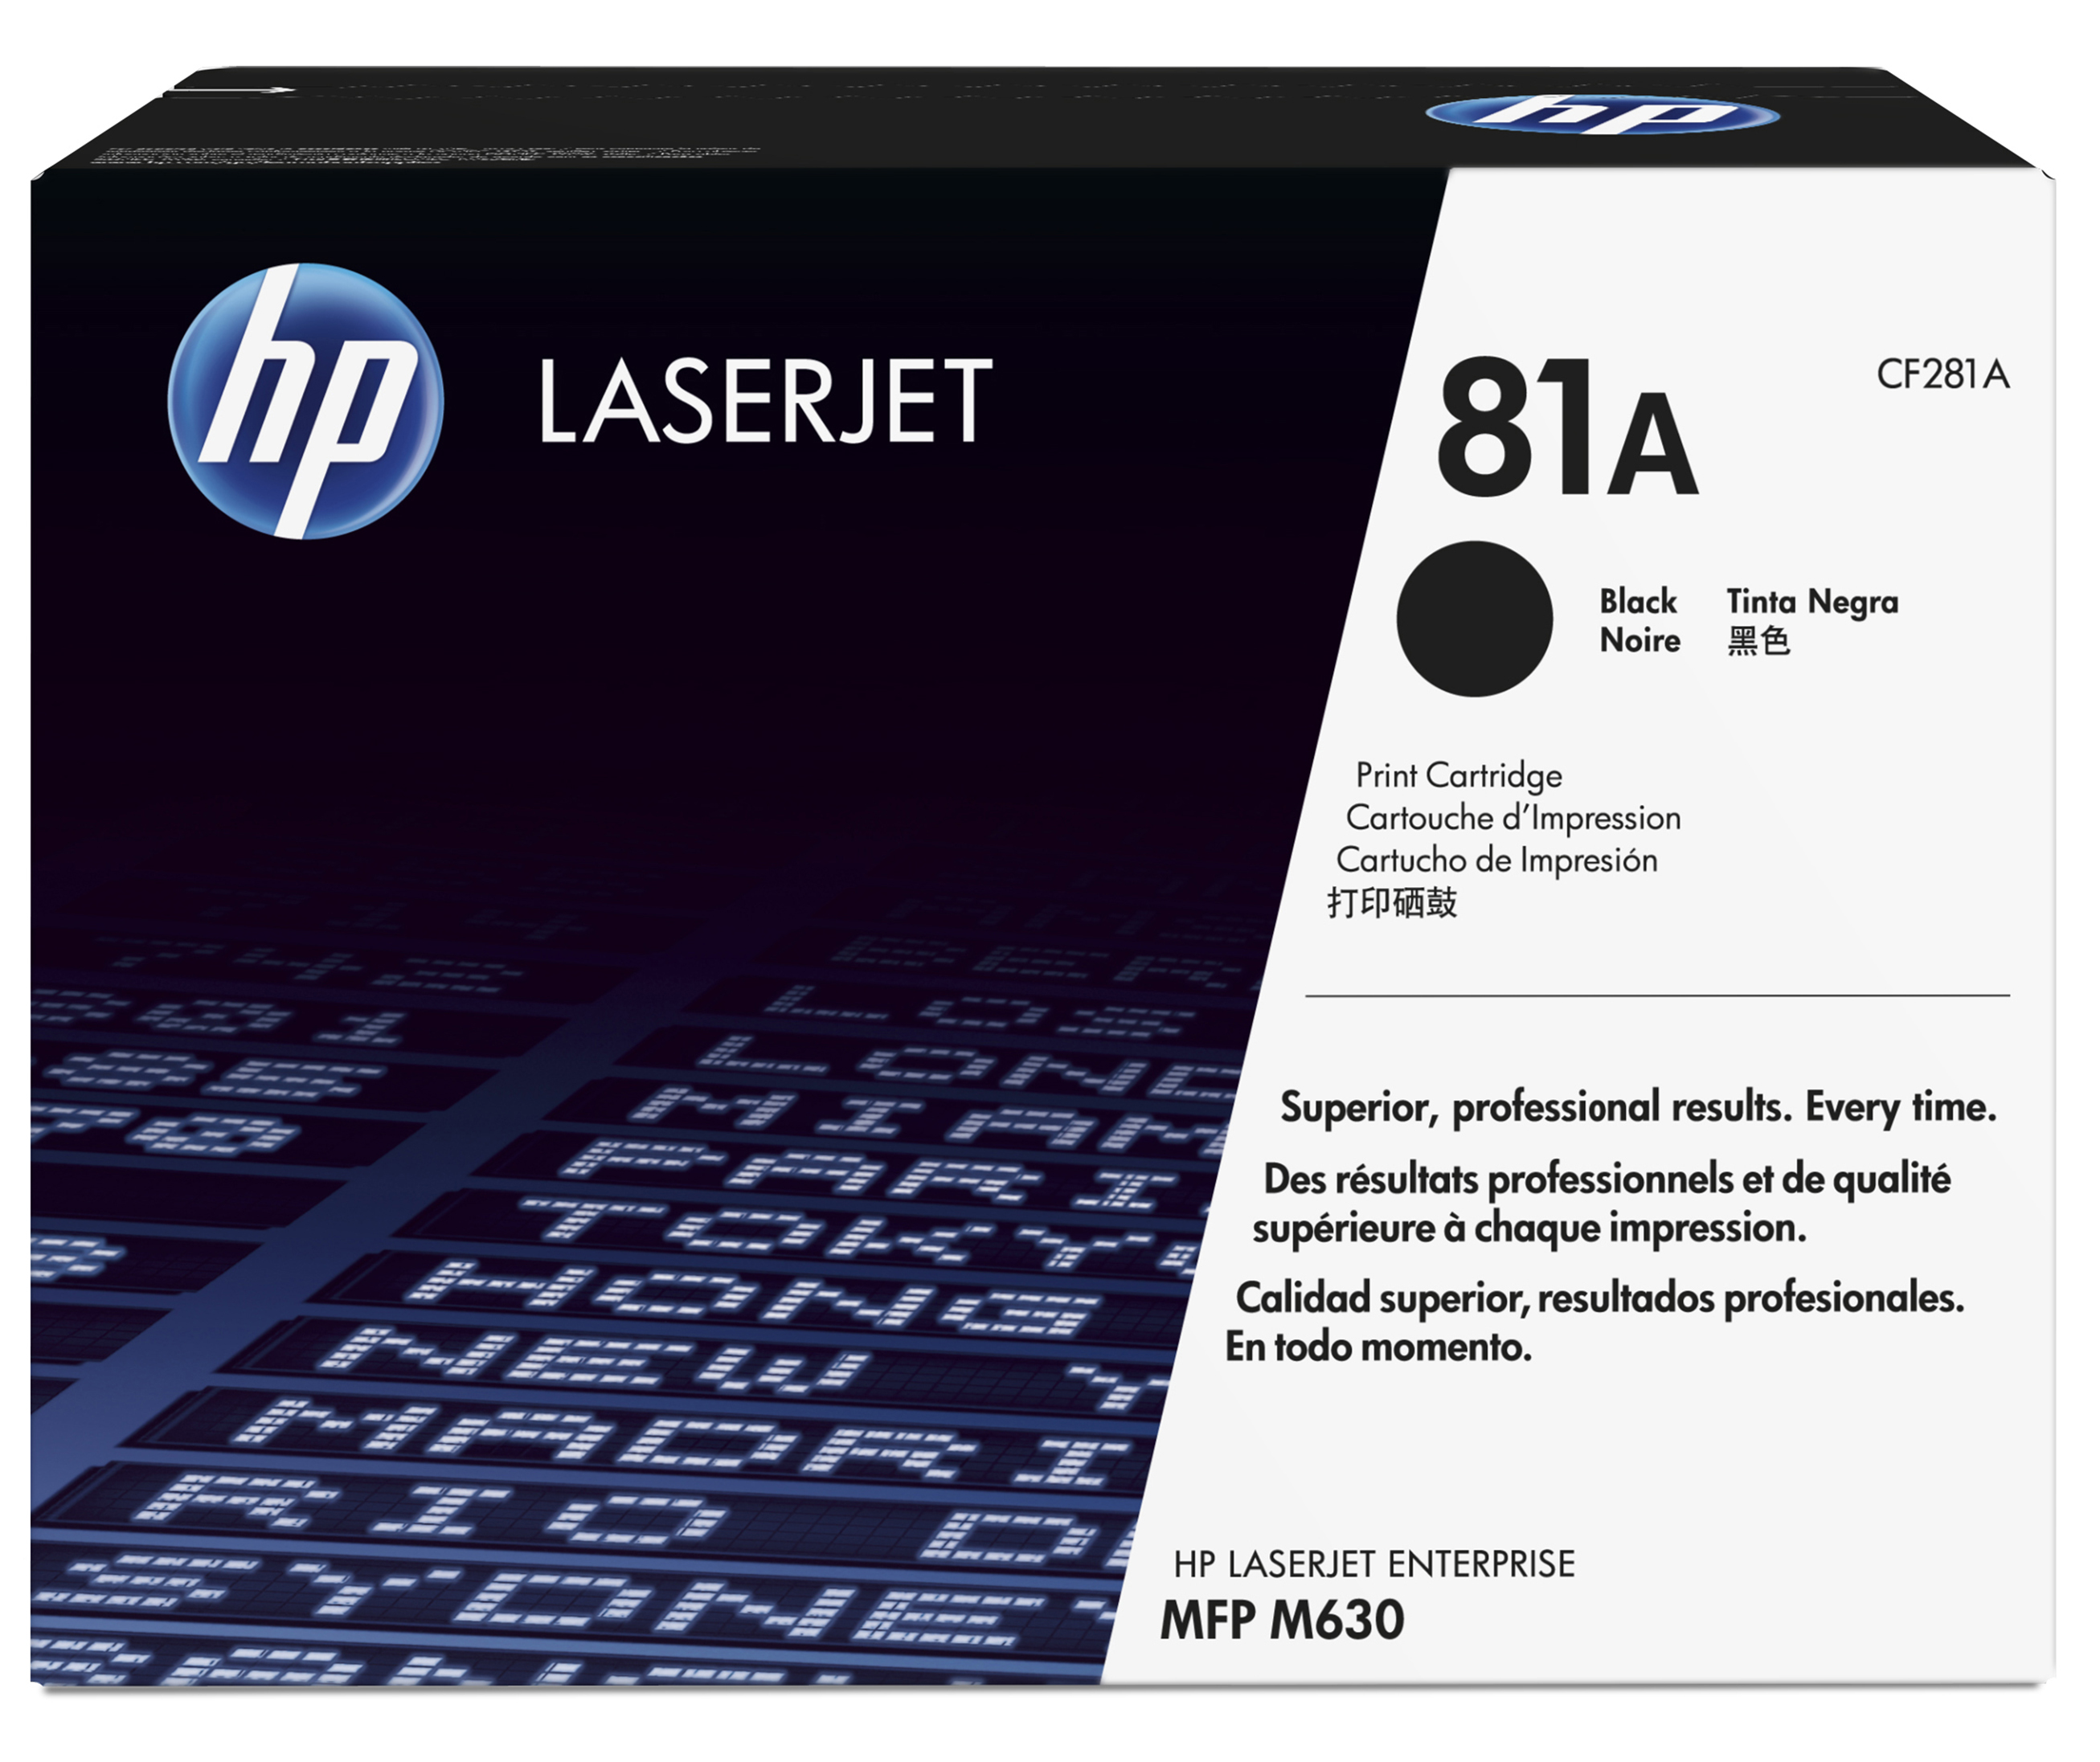 HP 81A - CF281A - 1 X Black - Toner Cartridge - For LaserJet Enterprise Flow M630, Flow MFP M630, M604, M605, M606, M630, MFP M630 CF281A - C2000